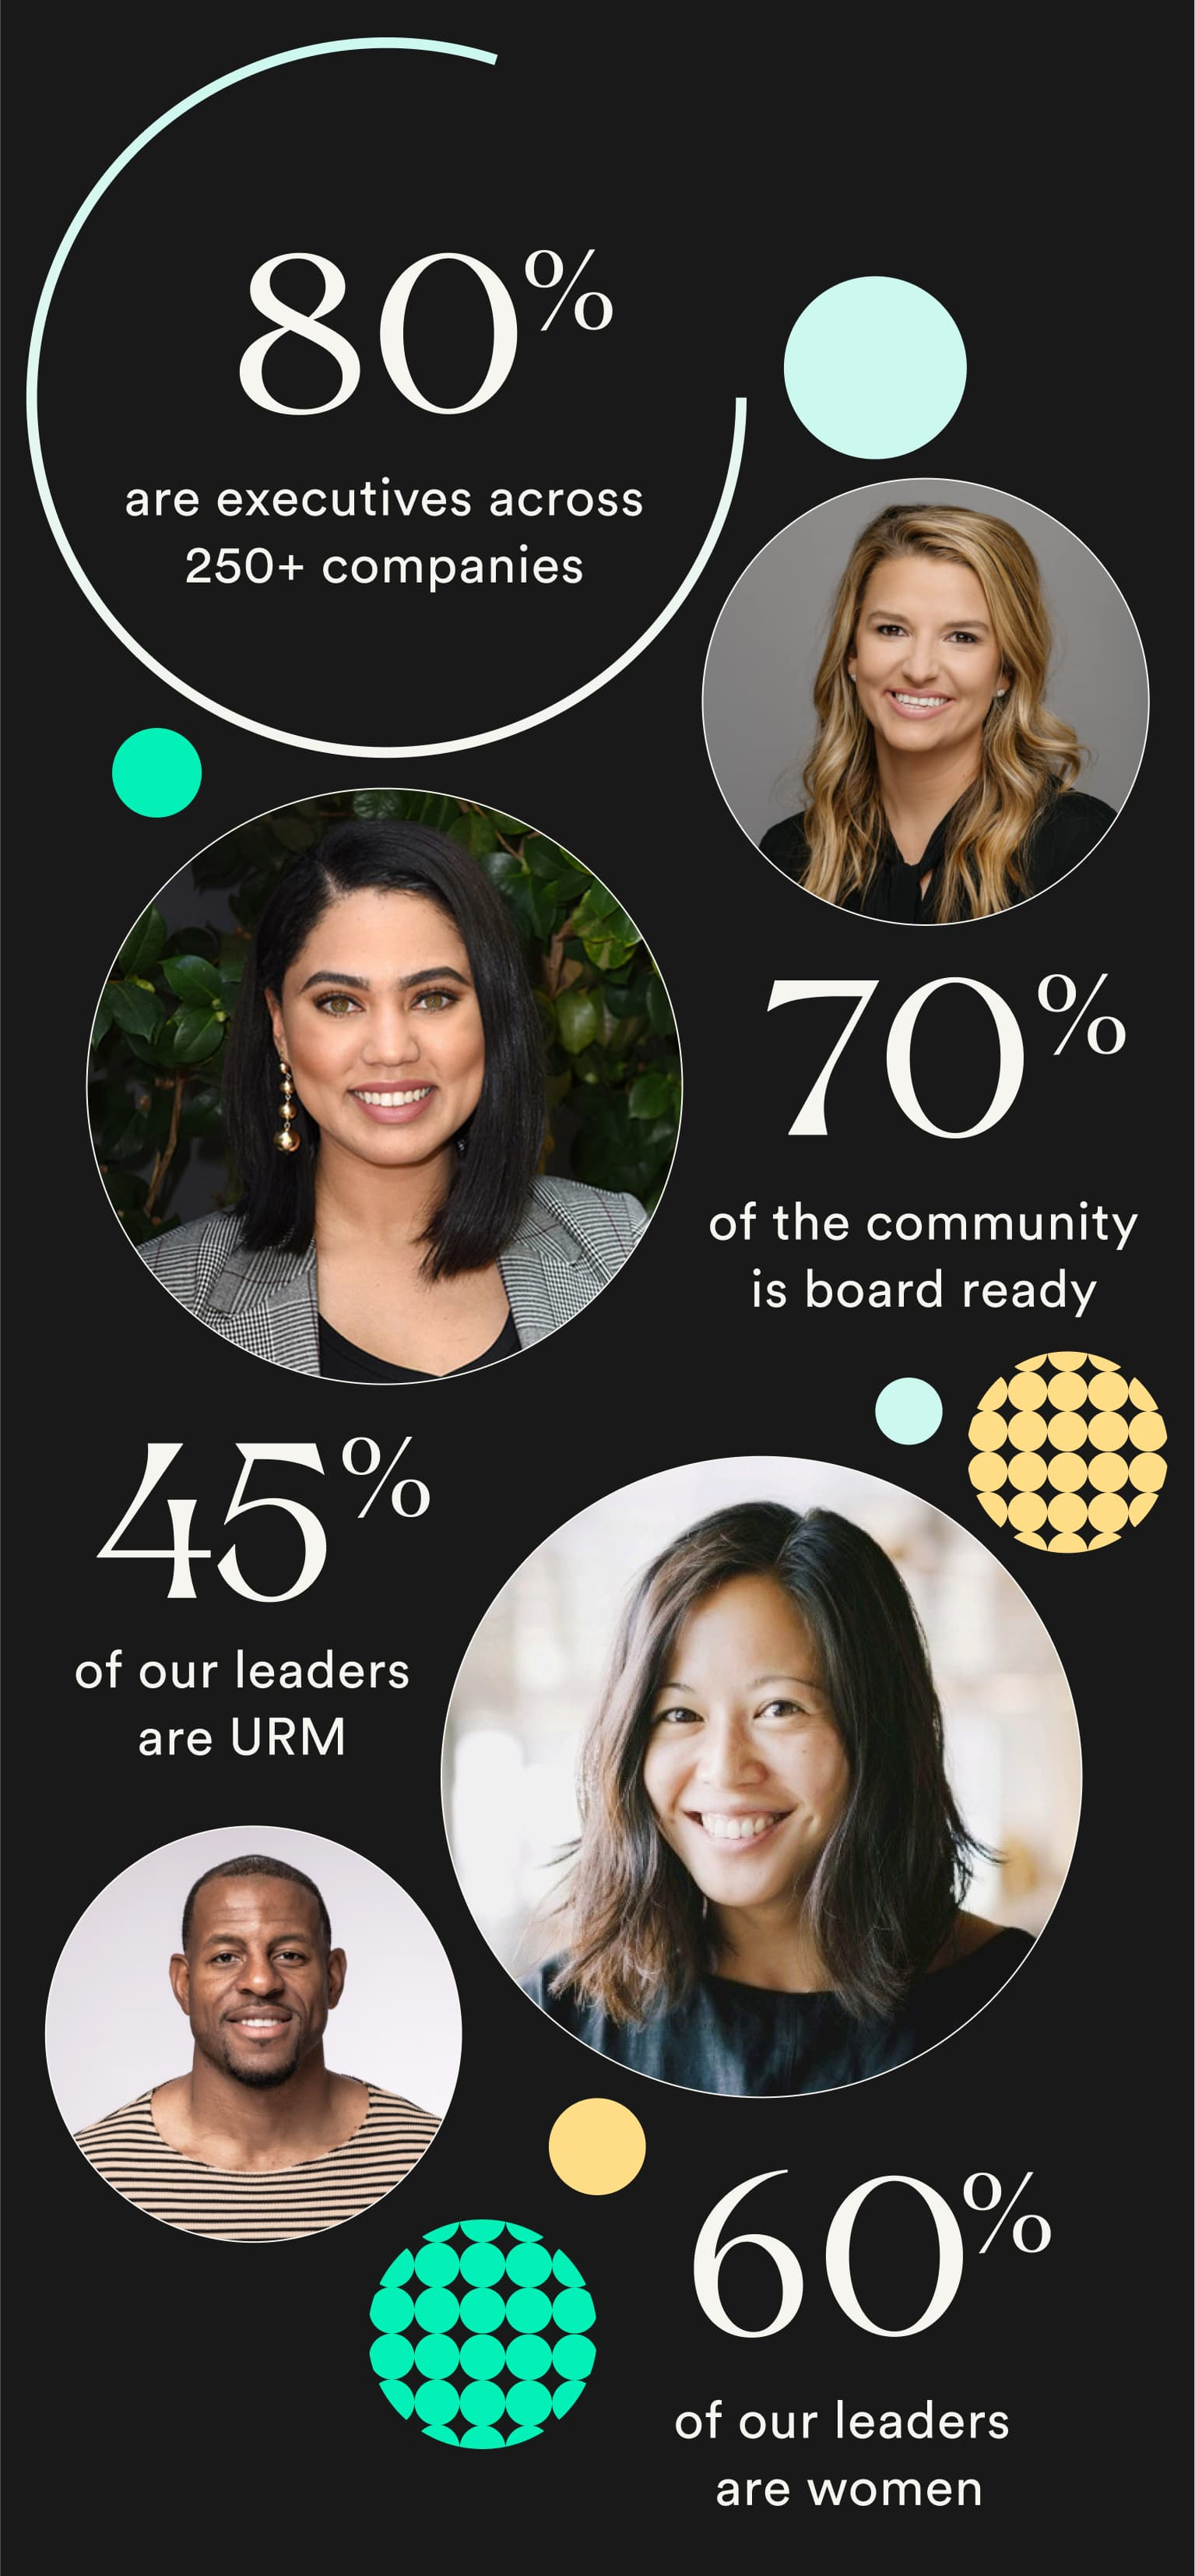 Portraits of our Crew of Leaders: 70% of the community id board ready, 80% are executives across 250+ companies, 60% of our leaders are women, 45% of our leaders are URM.